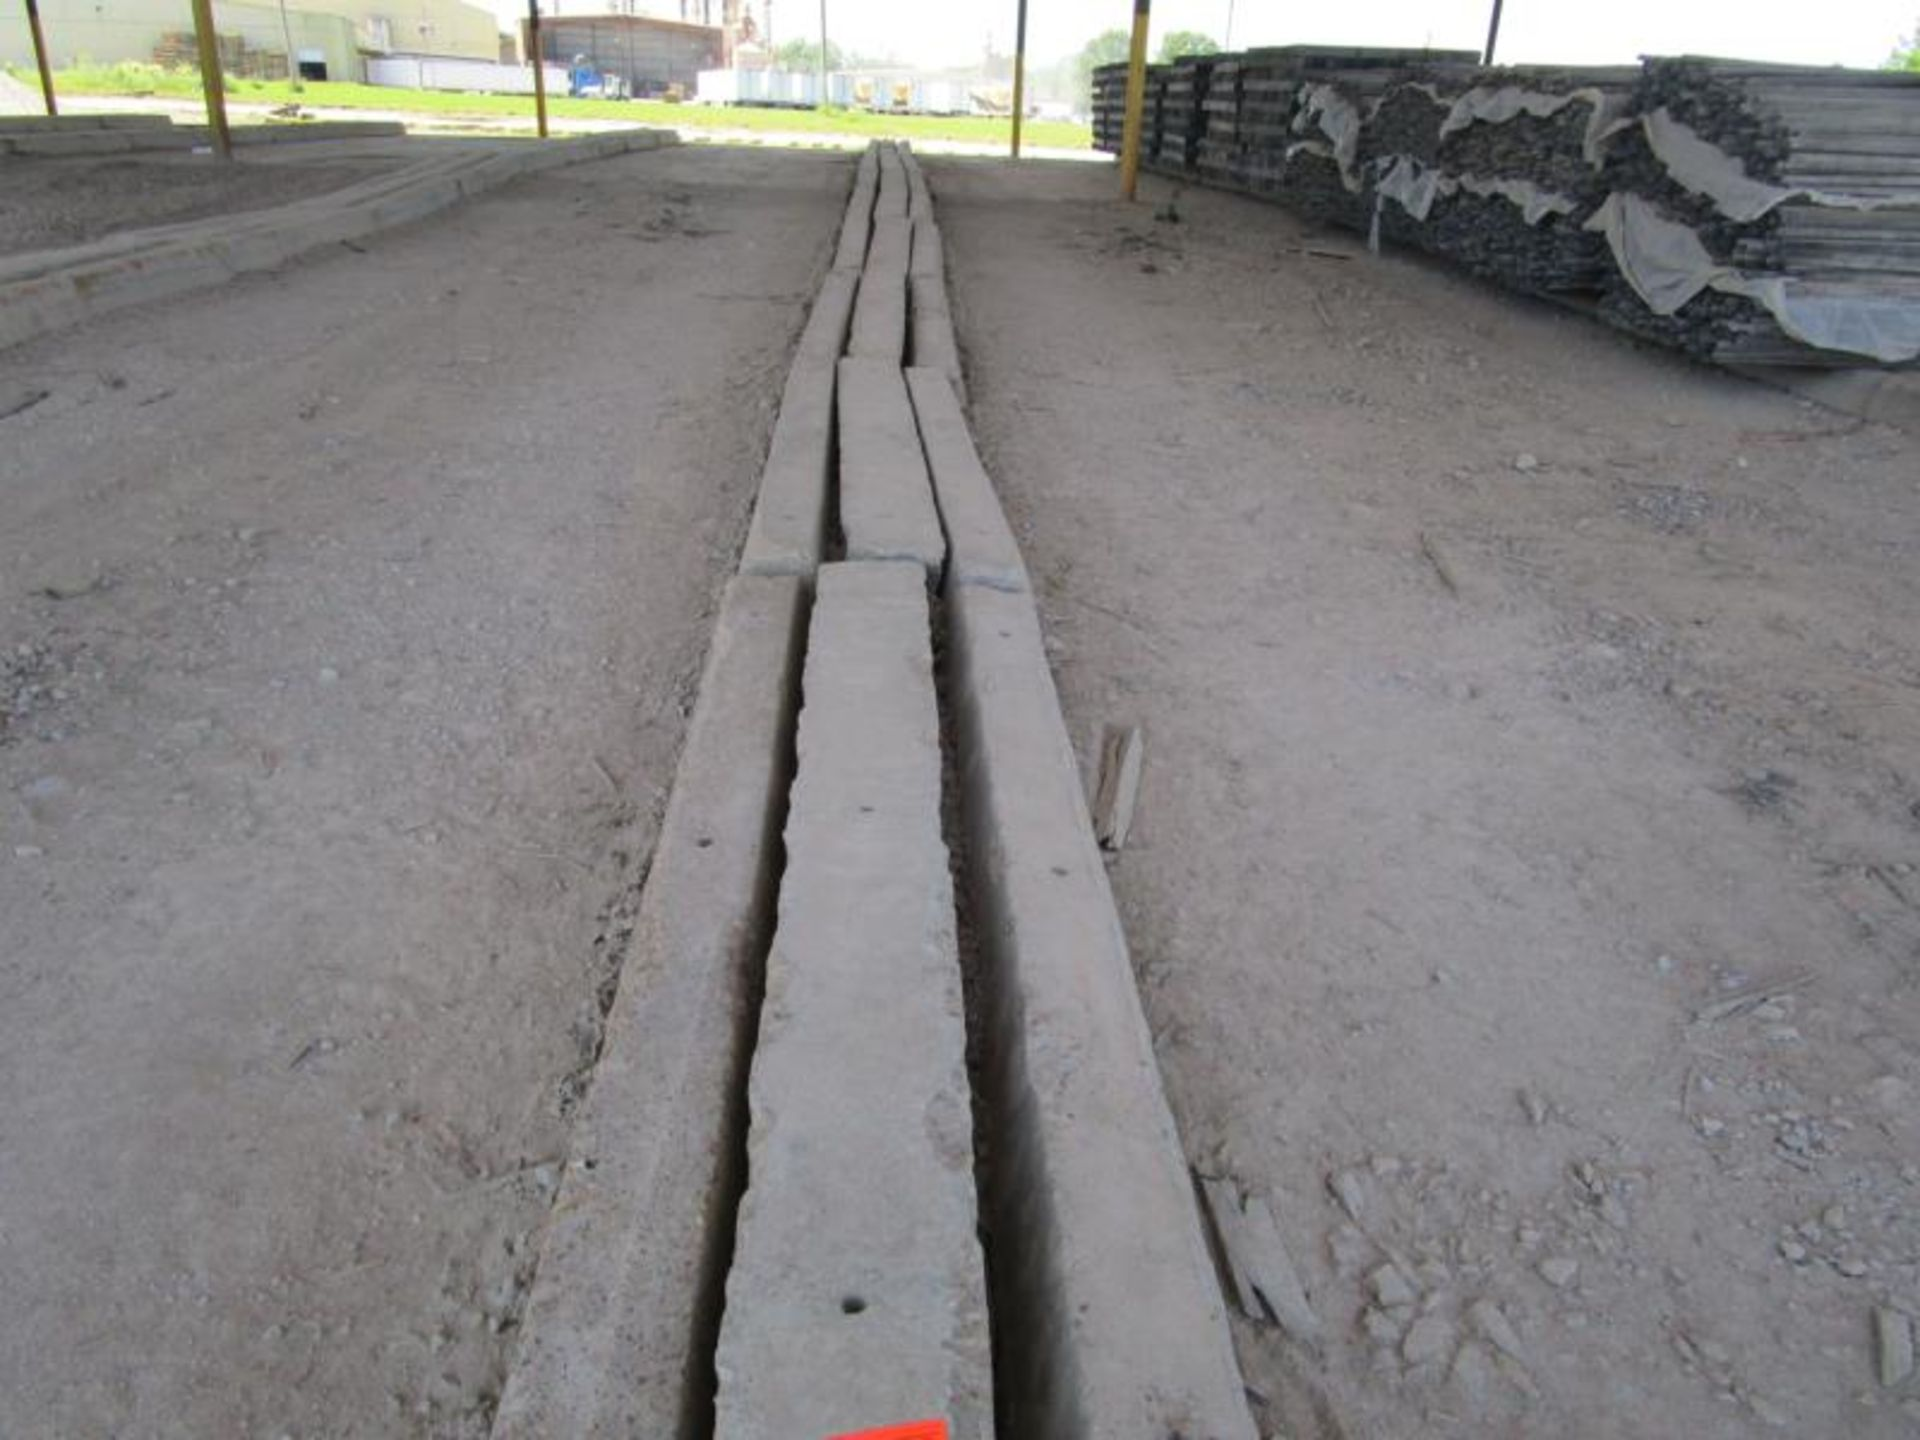 Lot 8 - Approximately 30 Concrete Curbs